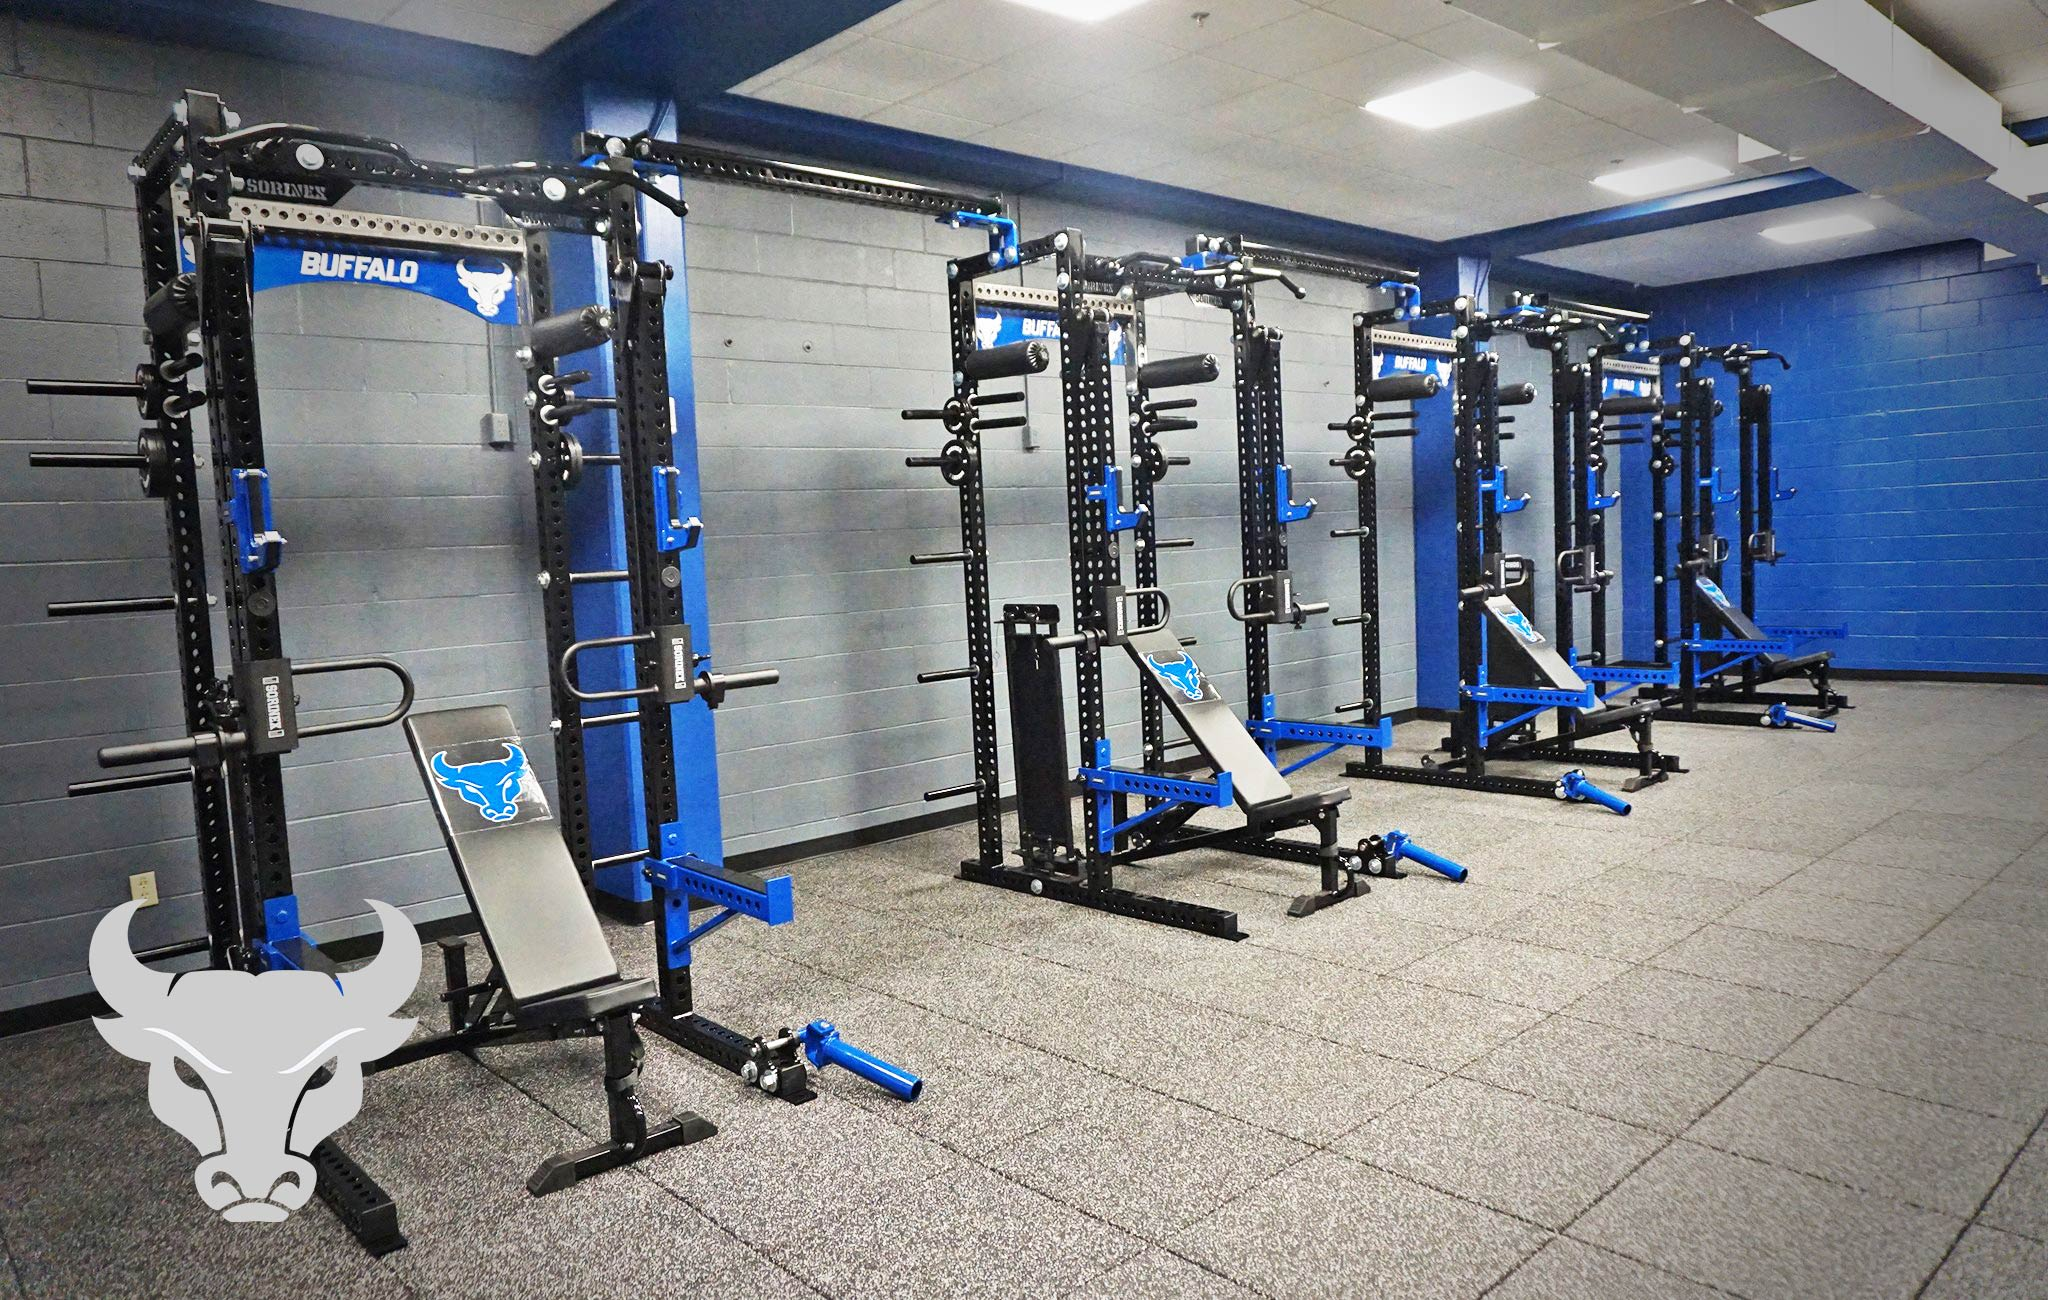 University of Buffalo Sorinex strength and conditioning facility